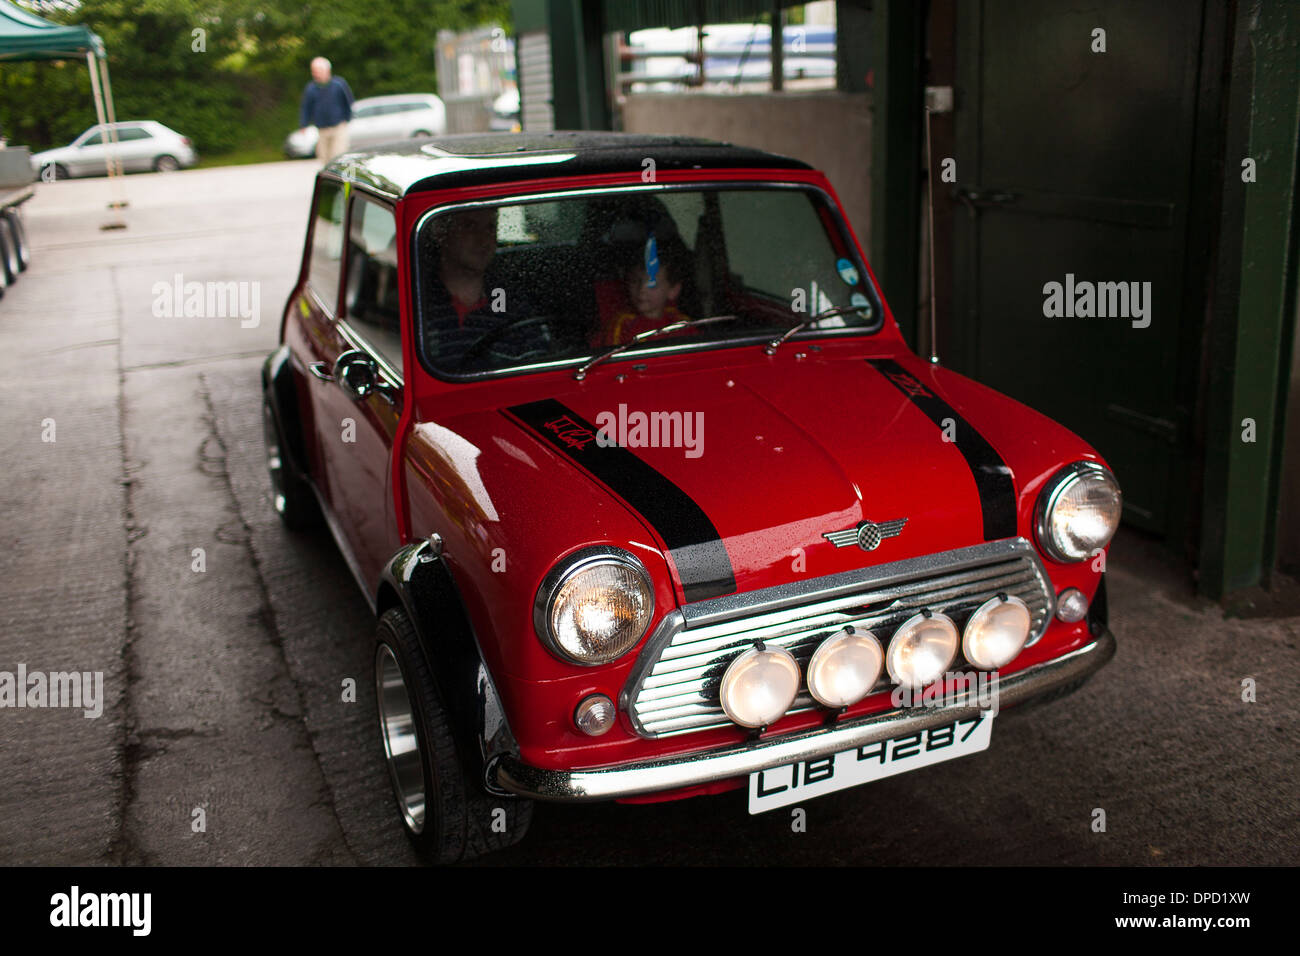 A classic racing red Mini Cooper 1275 GT car at a rural country fair and  rally in Northern Ireland